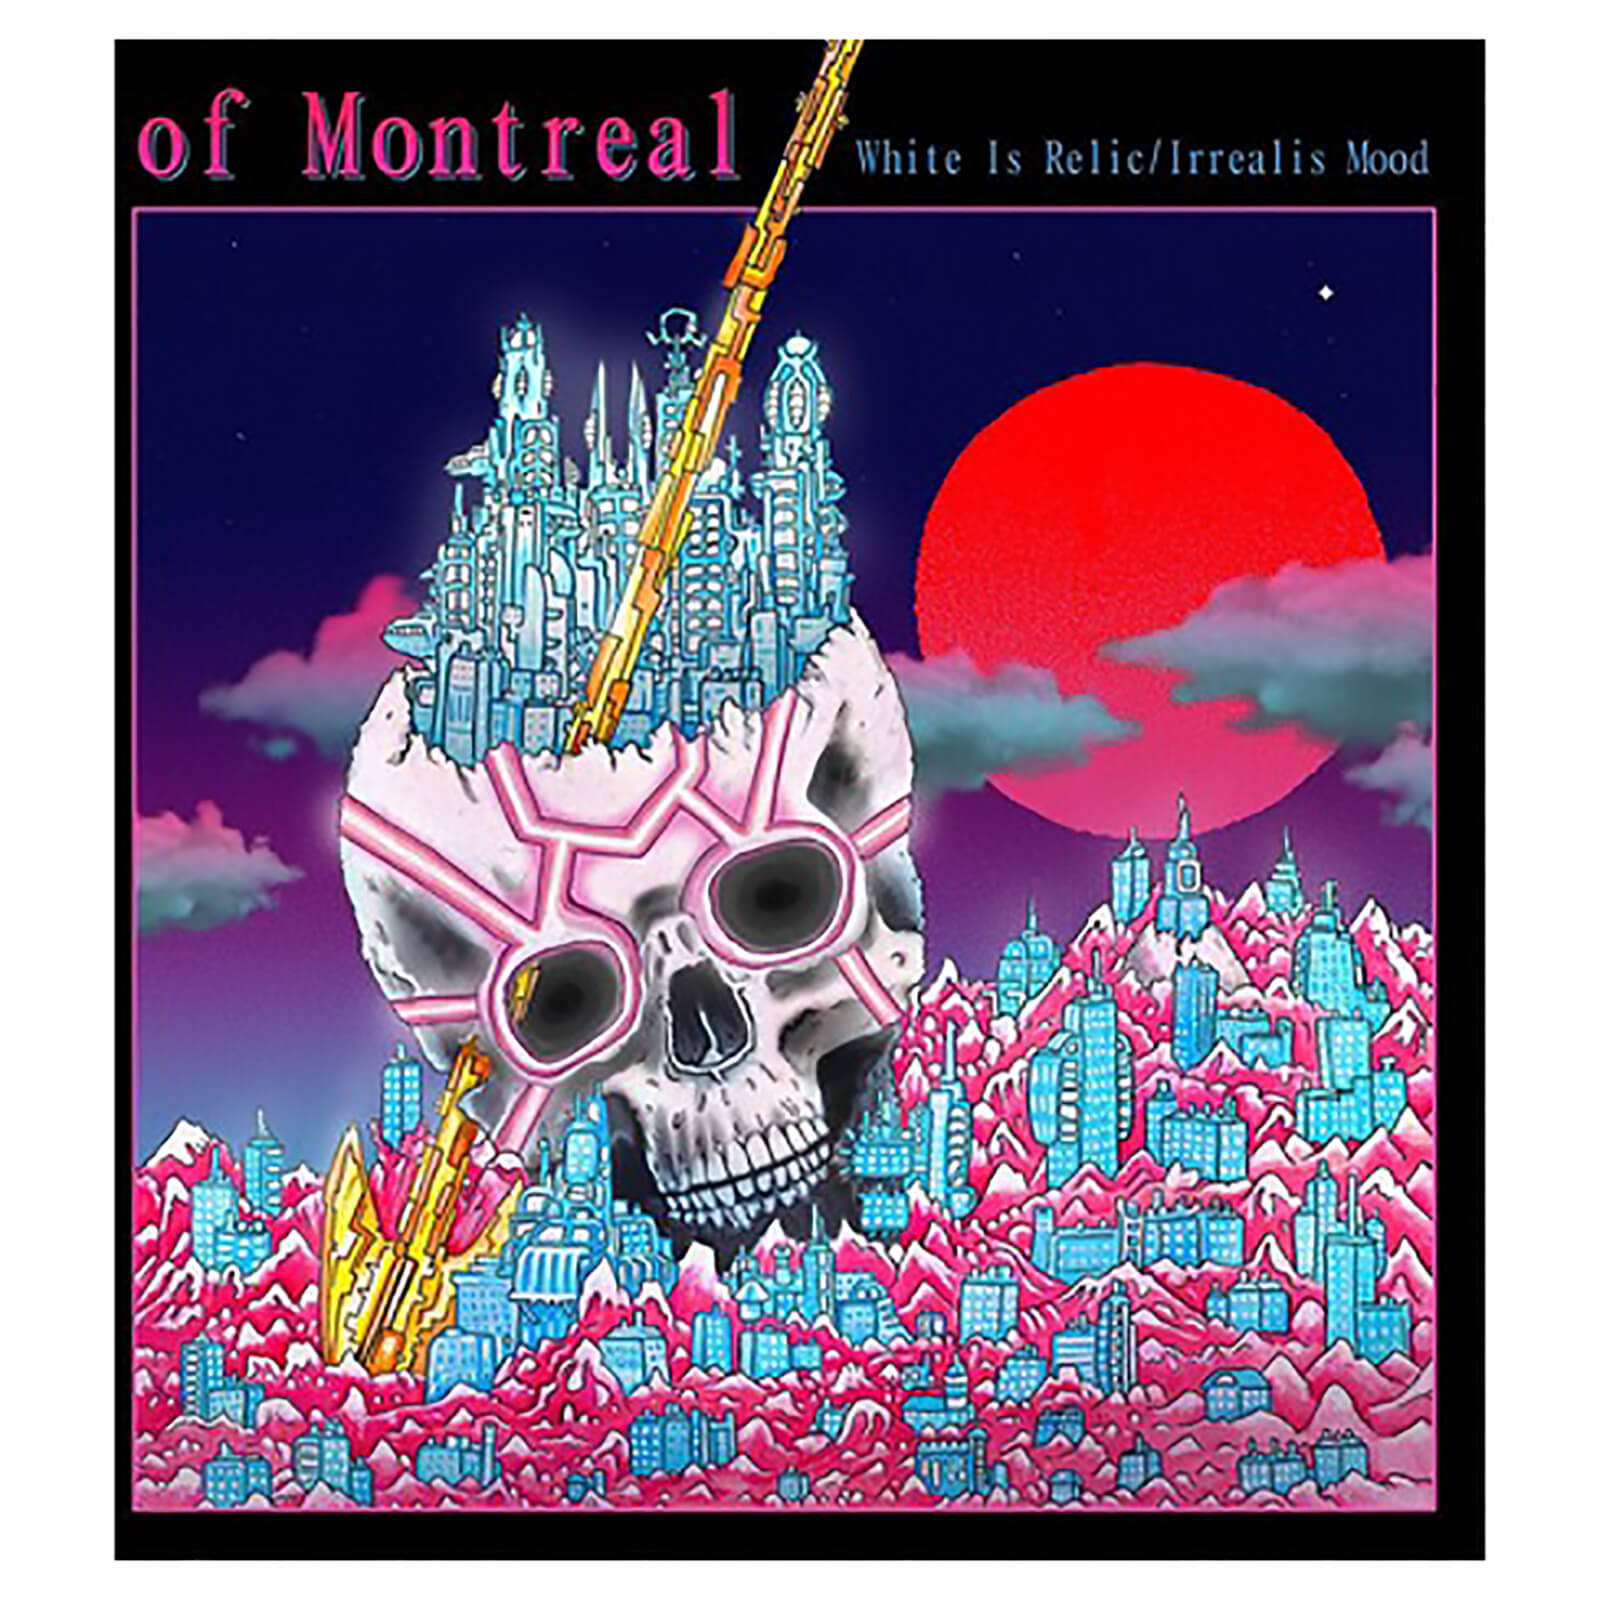 Of Montreal - White Is Relic/Irrealis Mood - Vinyl